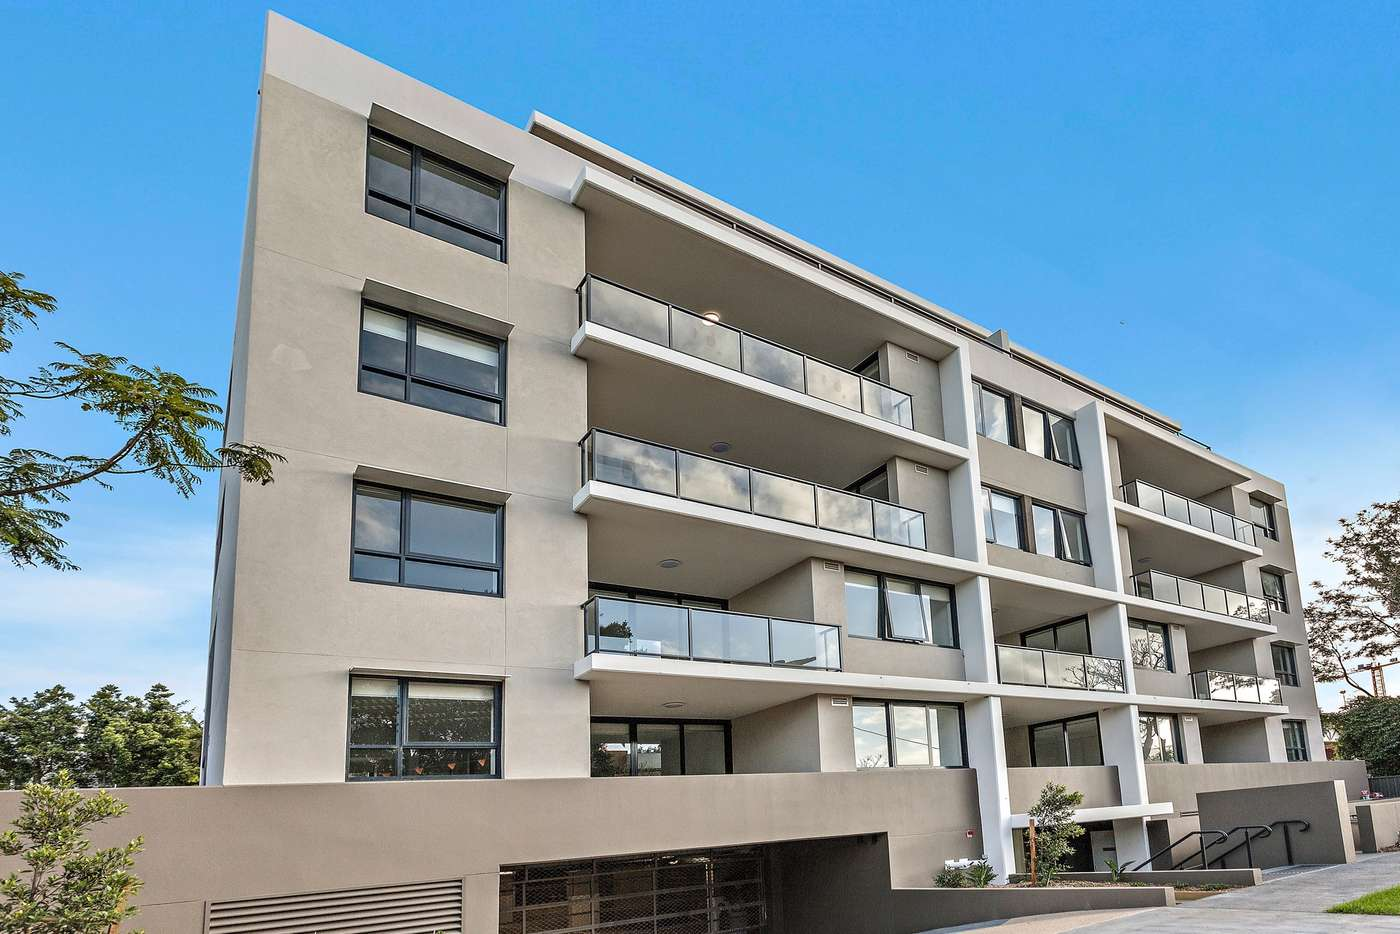 Main view of Homely unit listing, 18/3-5 Wiseman Avenue, Wollongong NSW 2500